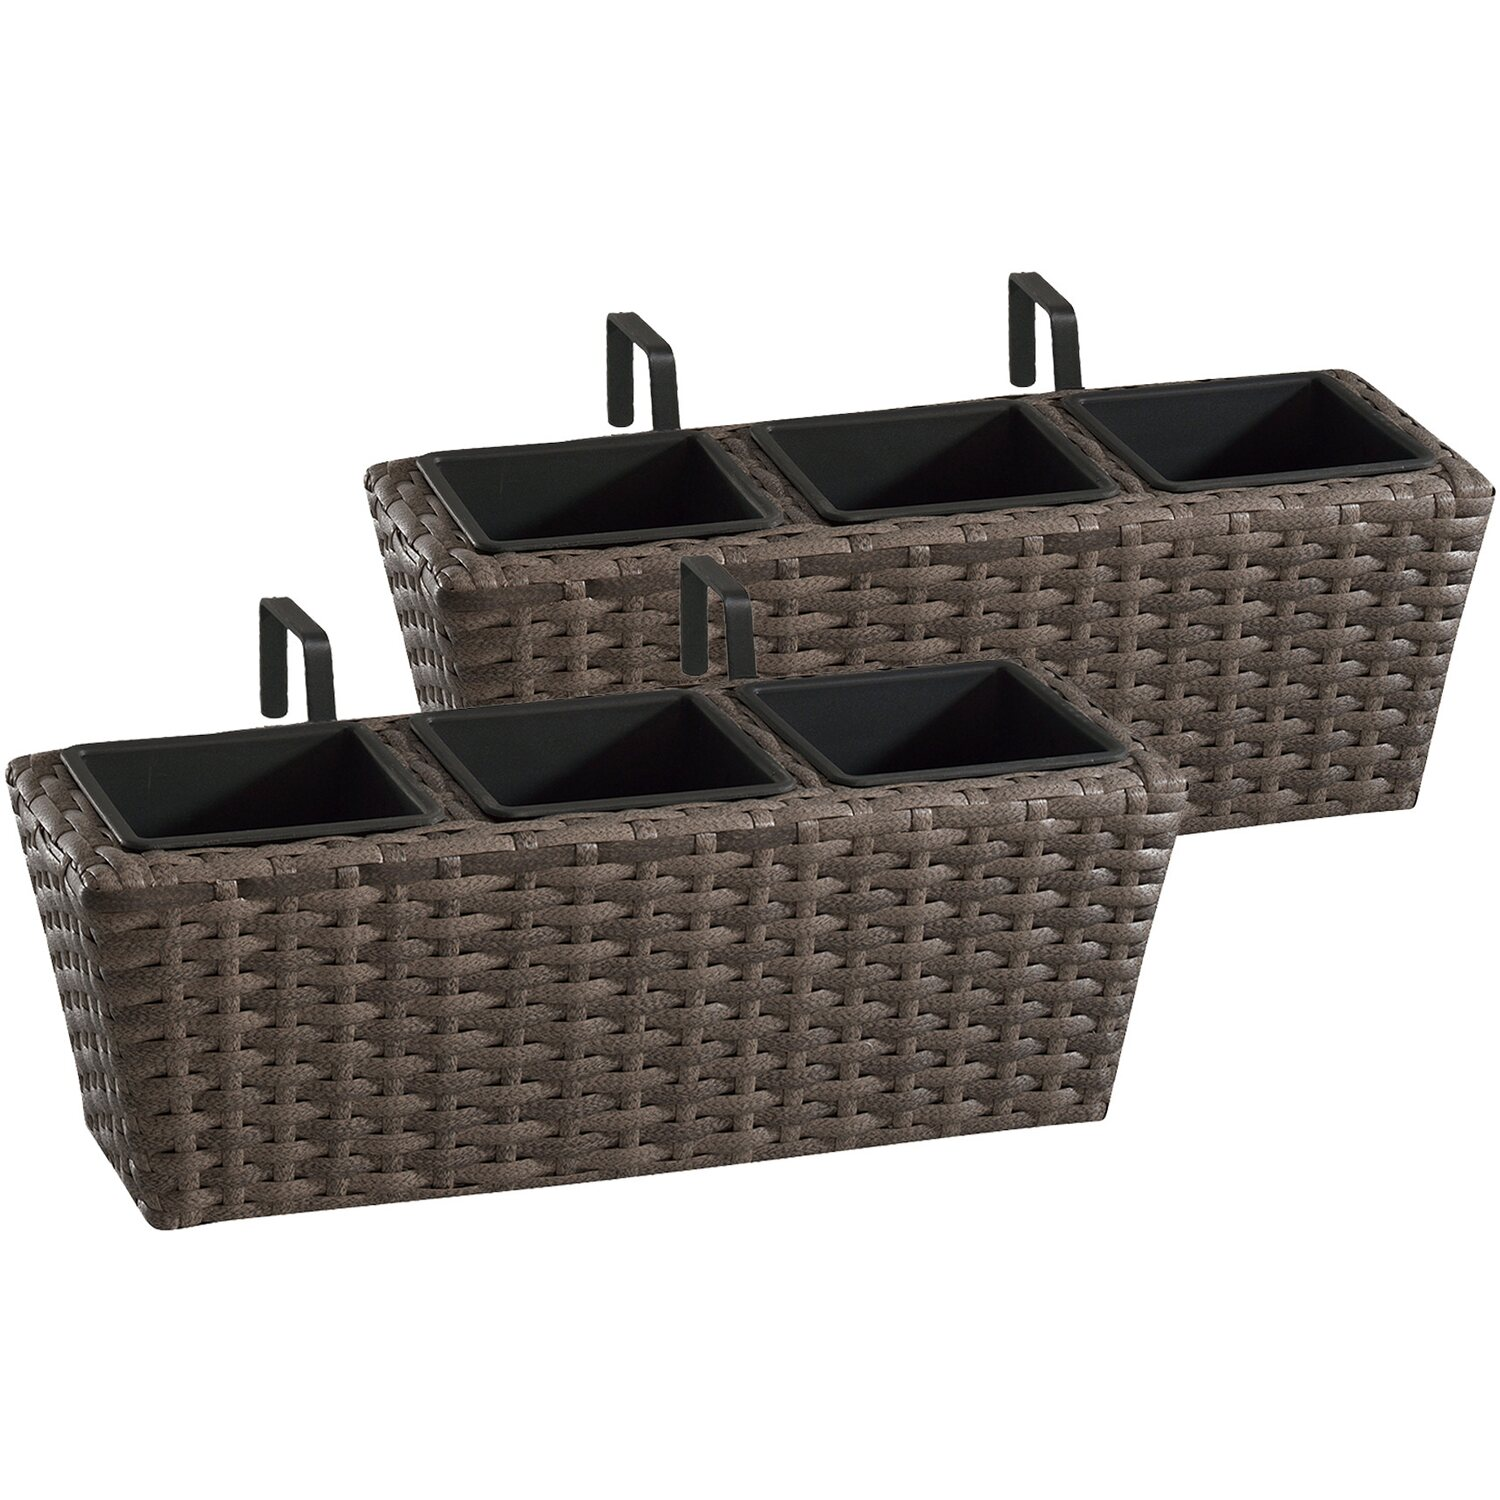 gartenfreude balkonkasten polyrattan 47 cm x 17 cm cappuccino 2 st ck kaufen bei obi. Black Bedroom Furniture Sets. Home Design Ideas